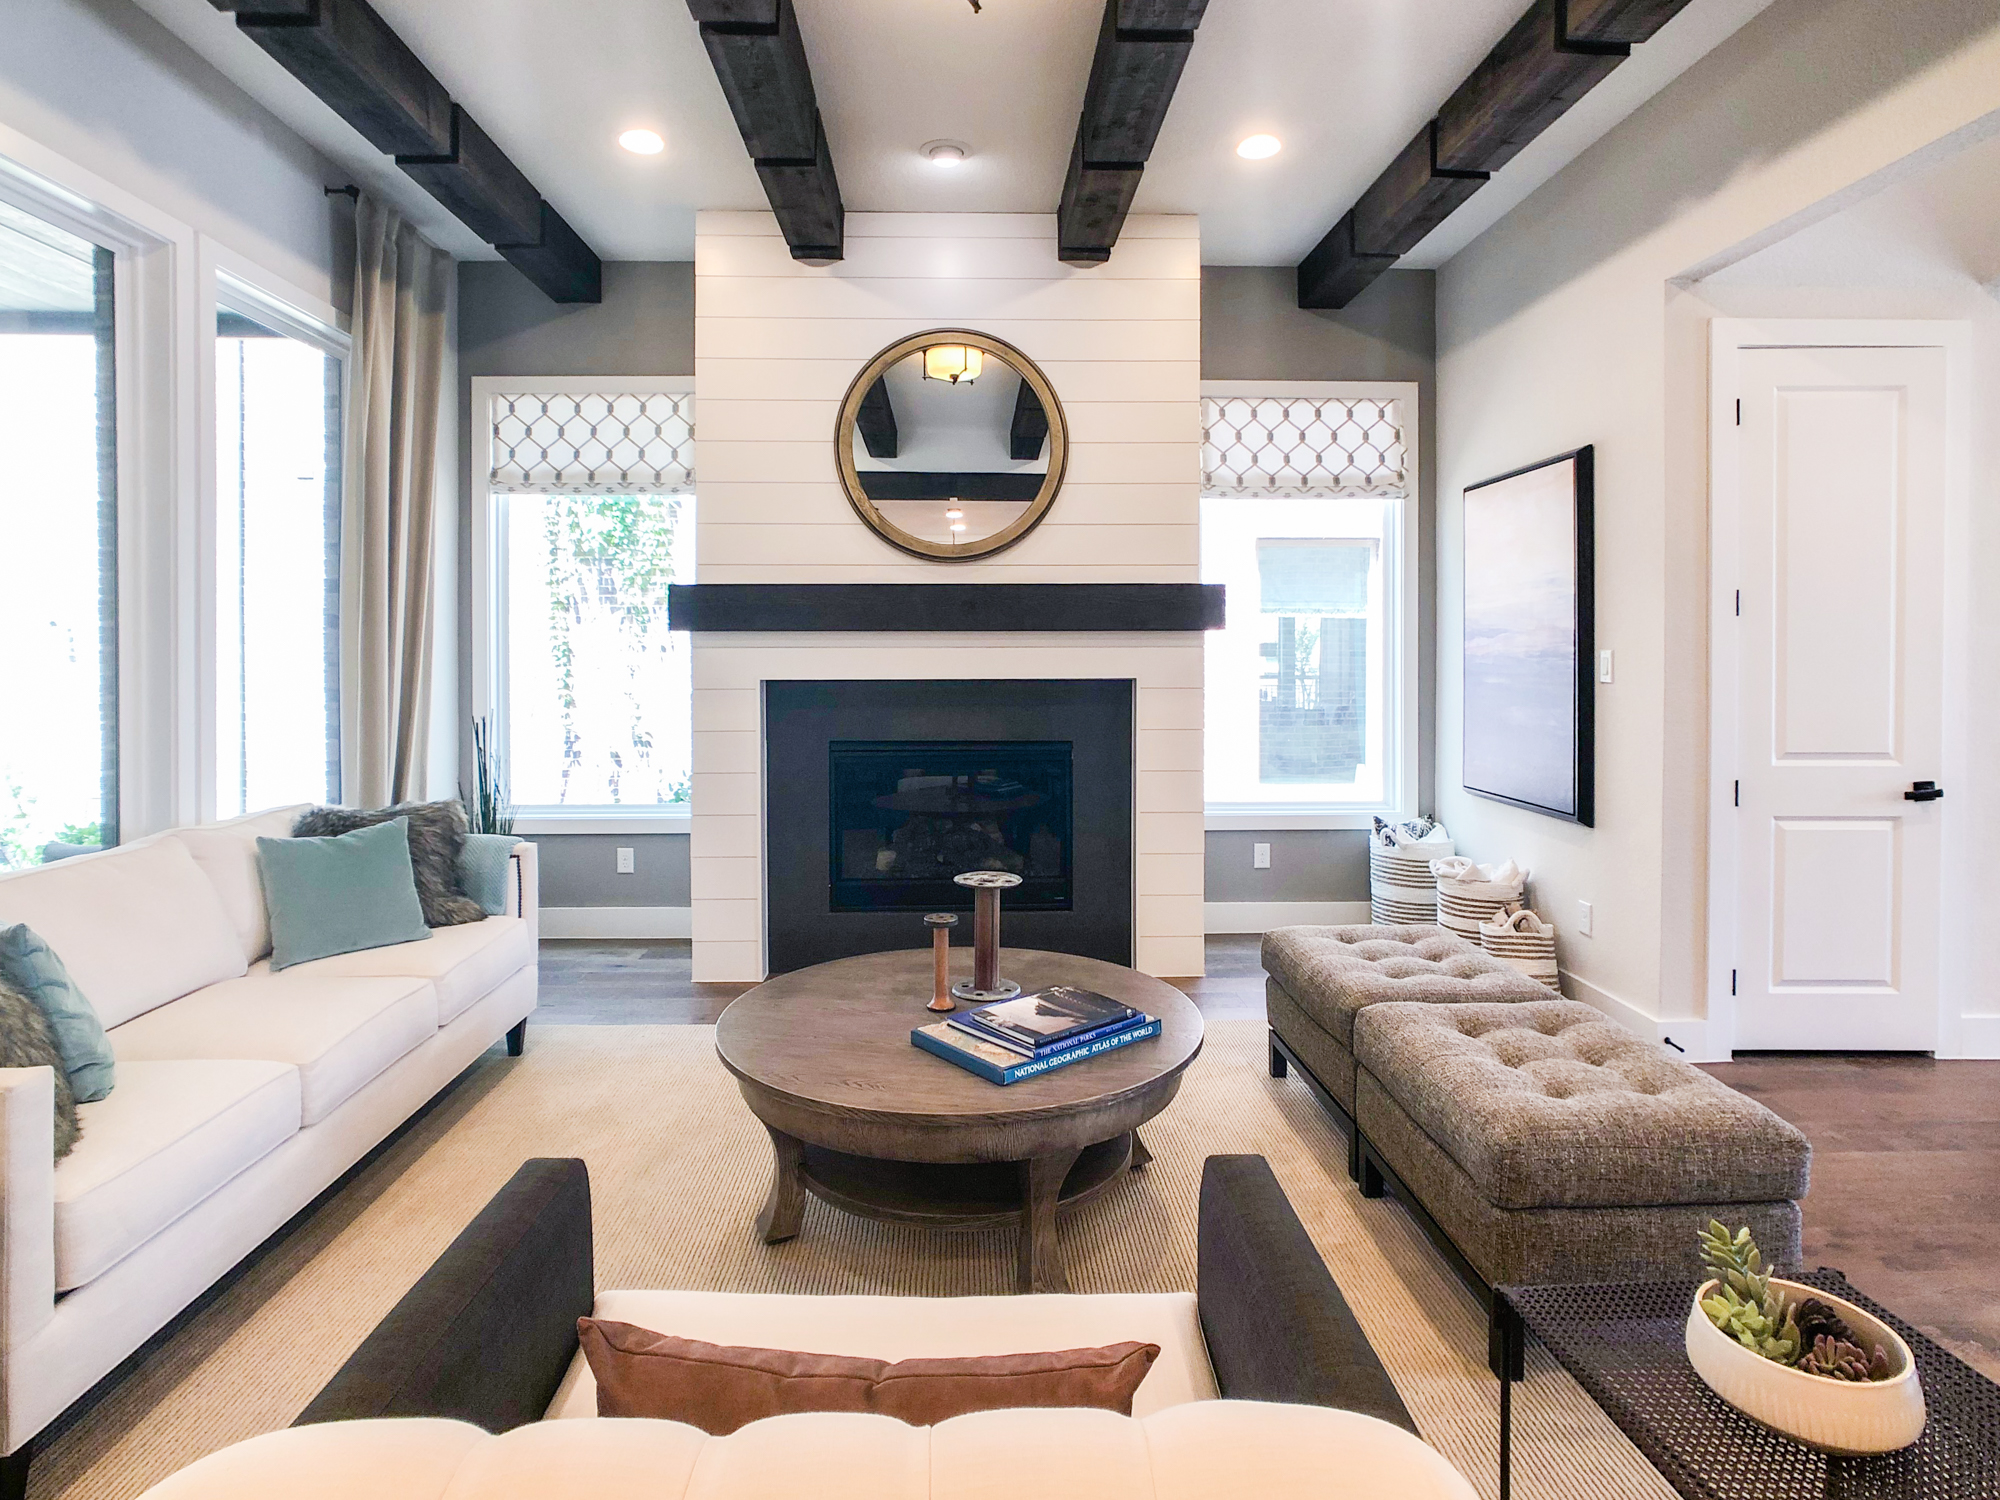 Add Wood Beams To Your Home For A Bold, Wood Beams In Living Room Ceiling